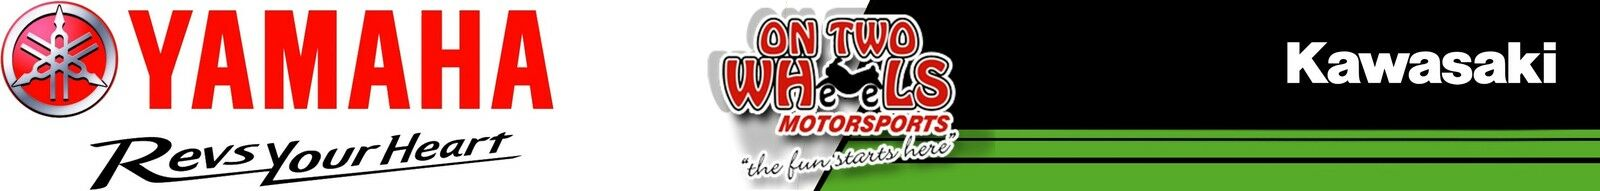 On Two Wheels Motorsorts